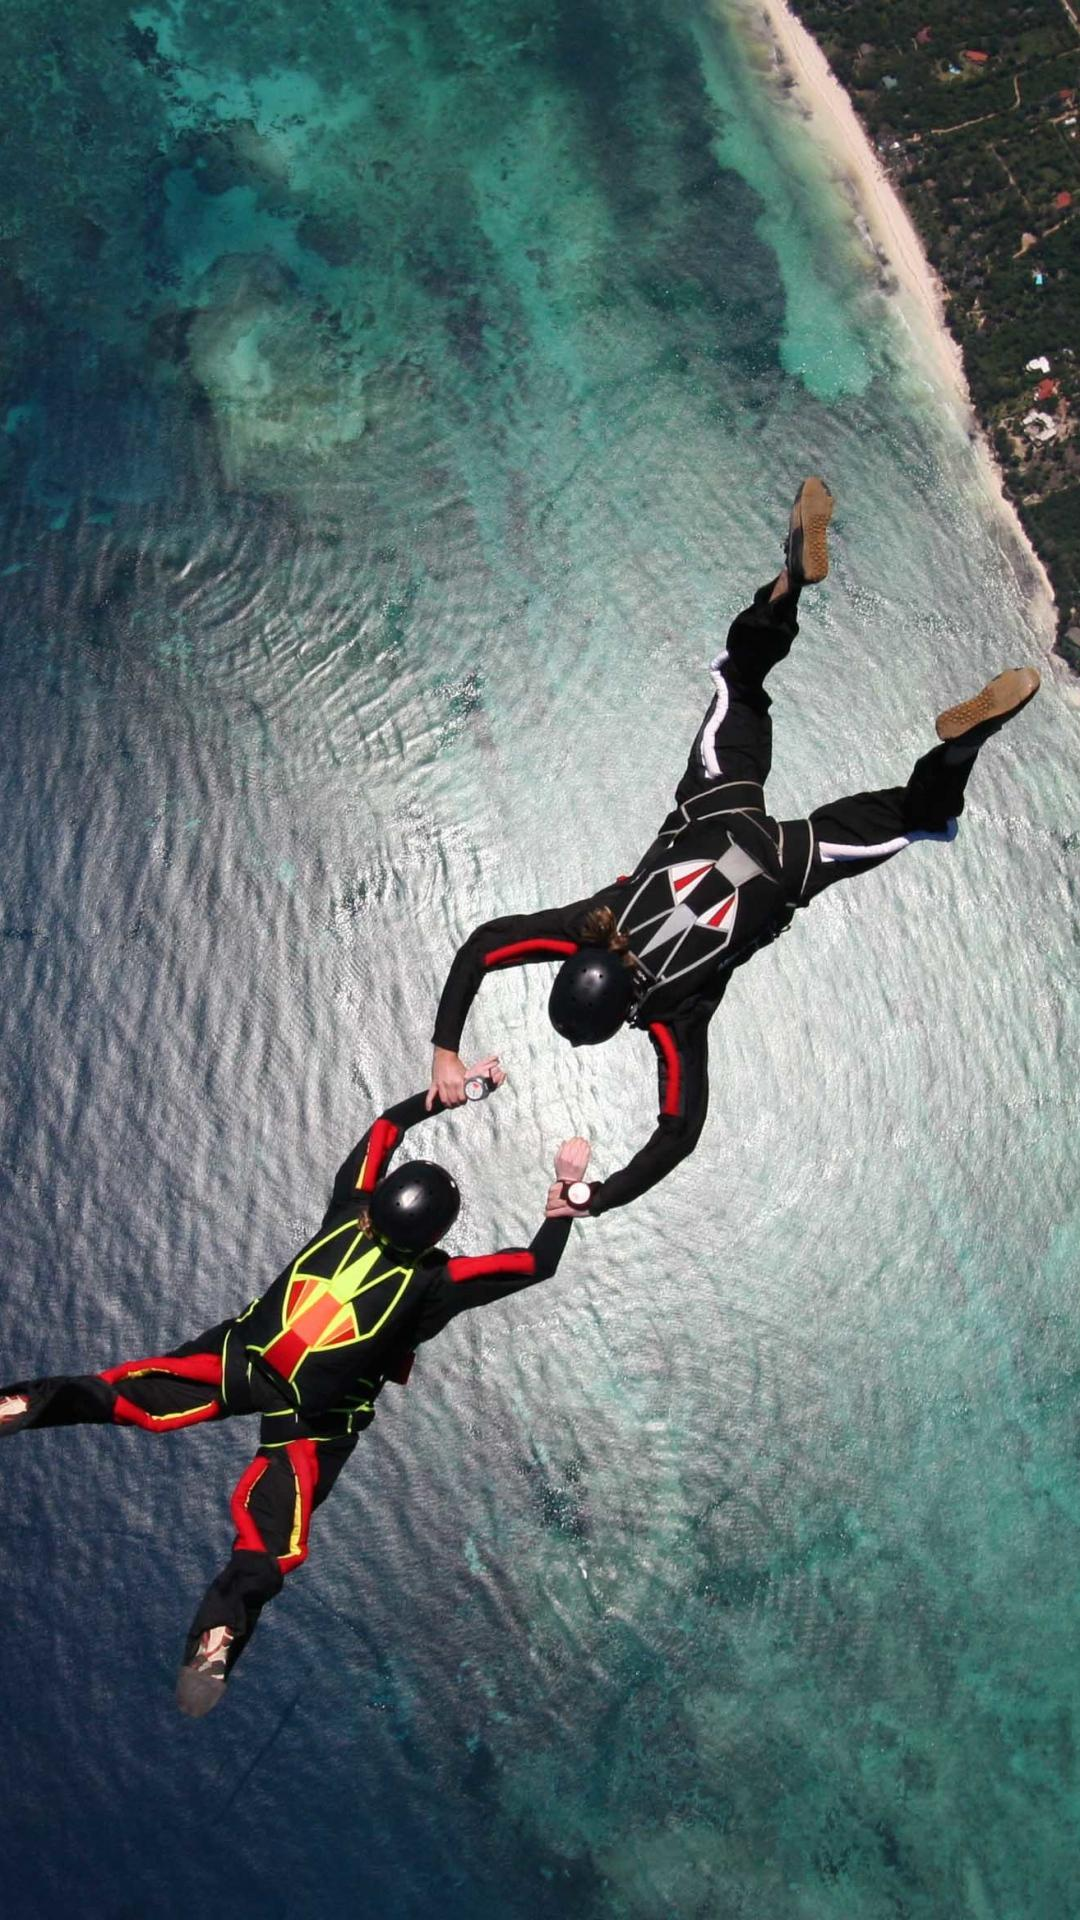 Skydiving Skydivers Parachuting Stunt Ocean HD Wallpapers